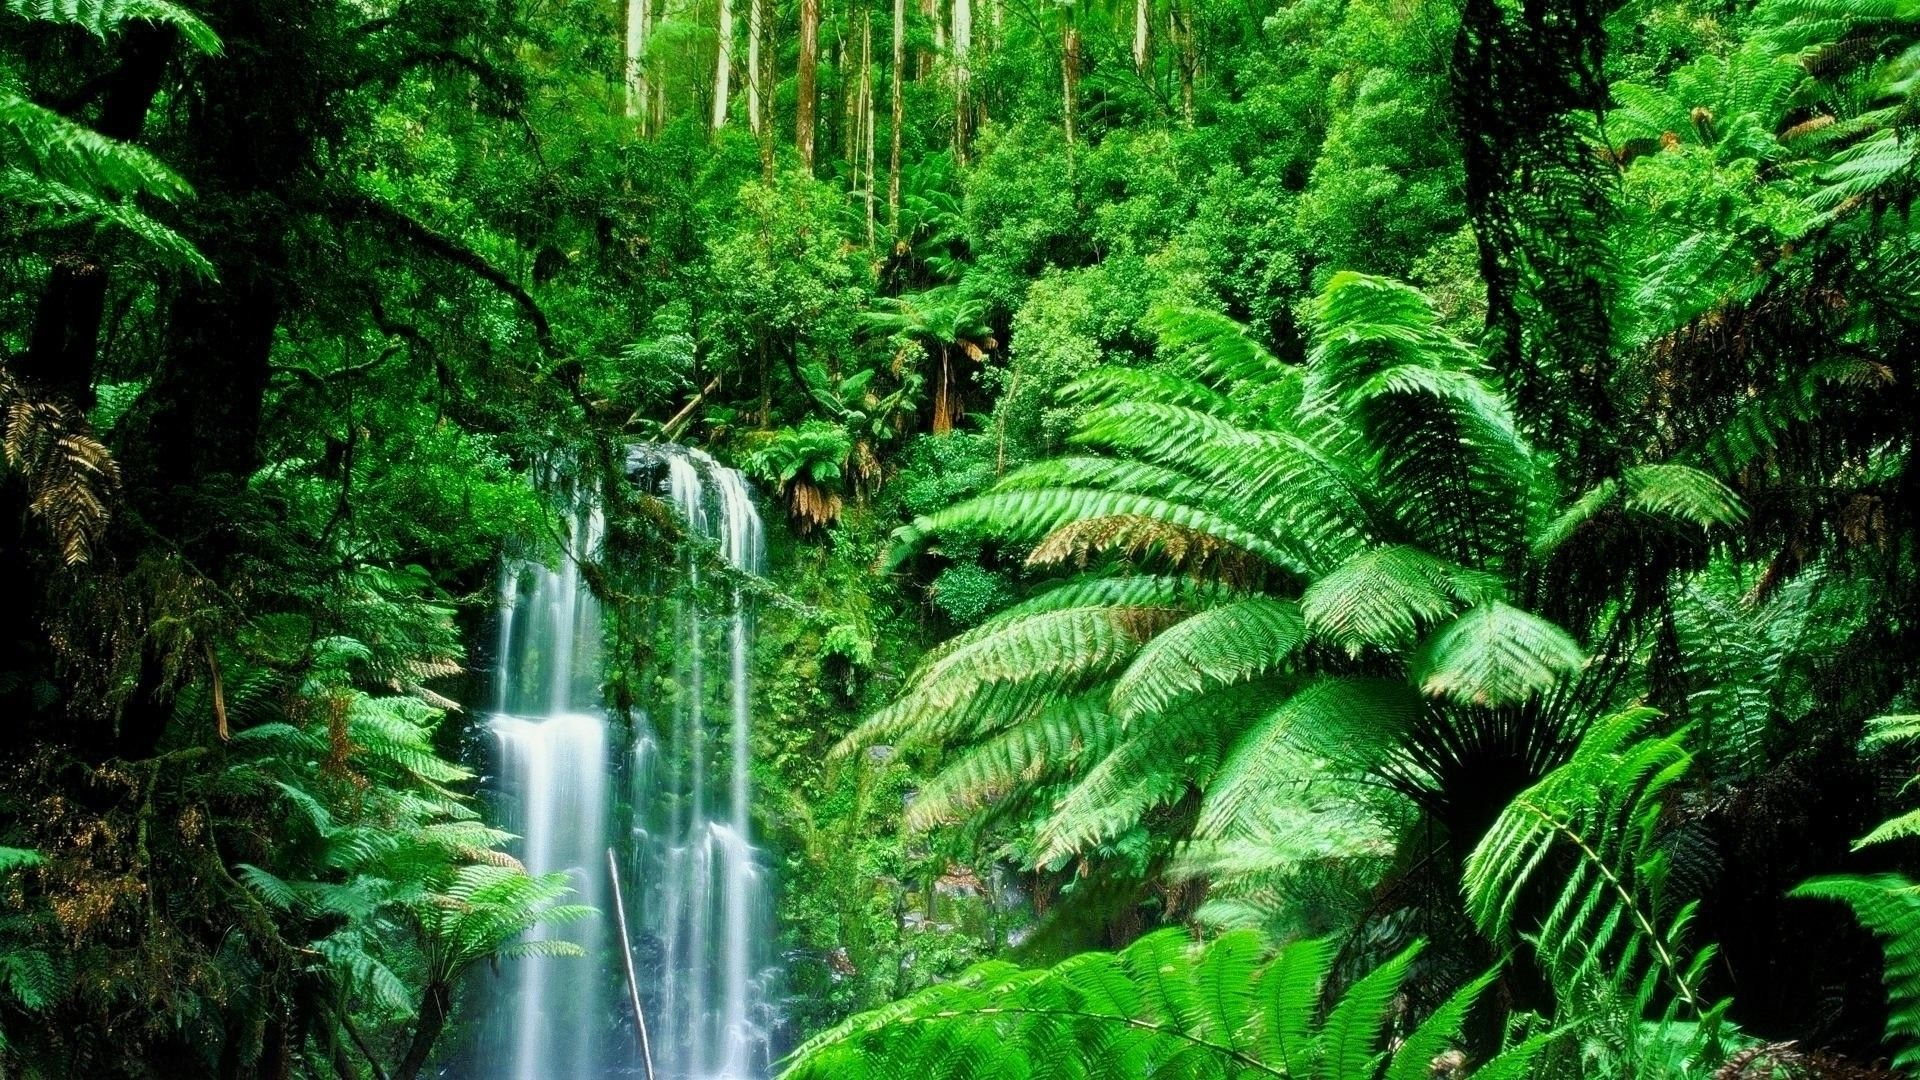 Amazon Rainforest Feel The Rainfall Of Leaves Rainforest Pictures Jungle Images Green Landscape